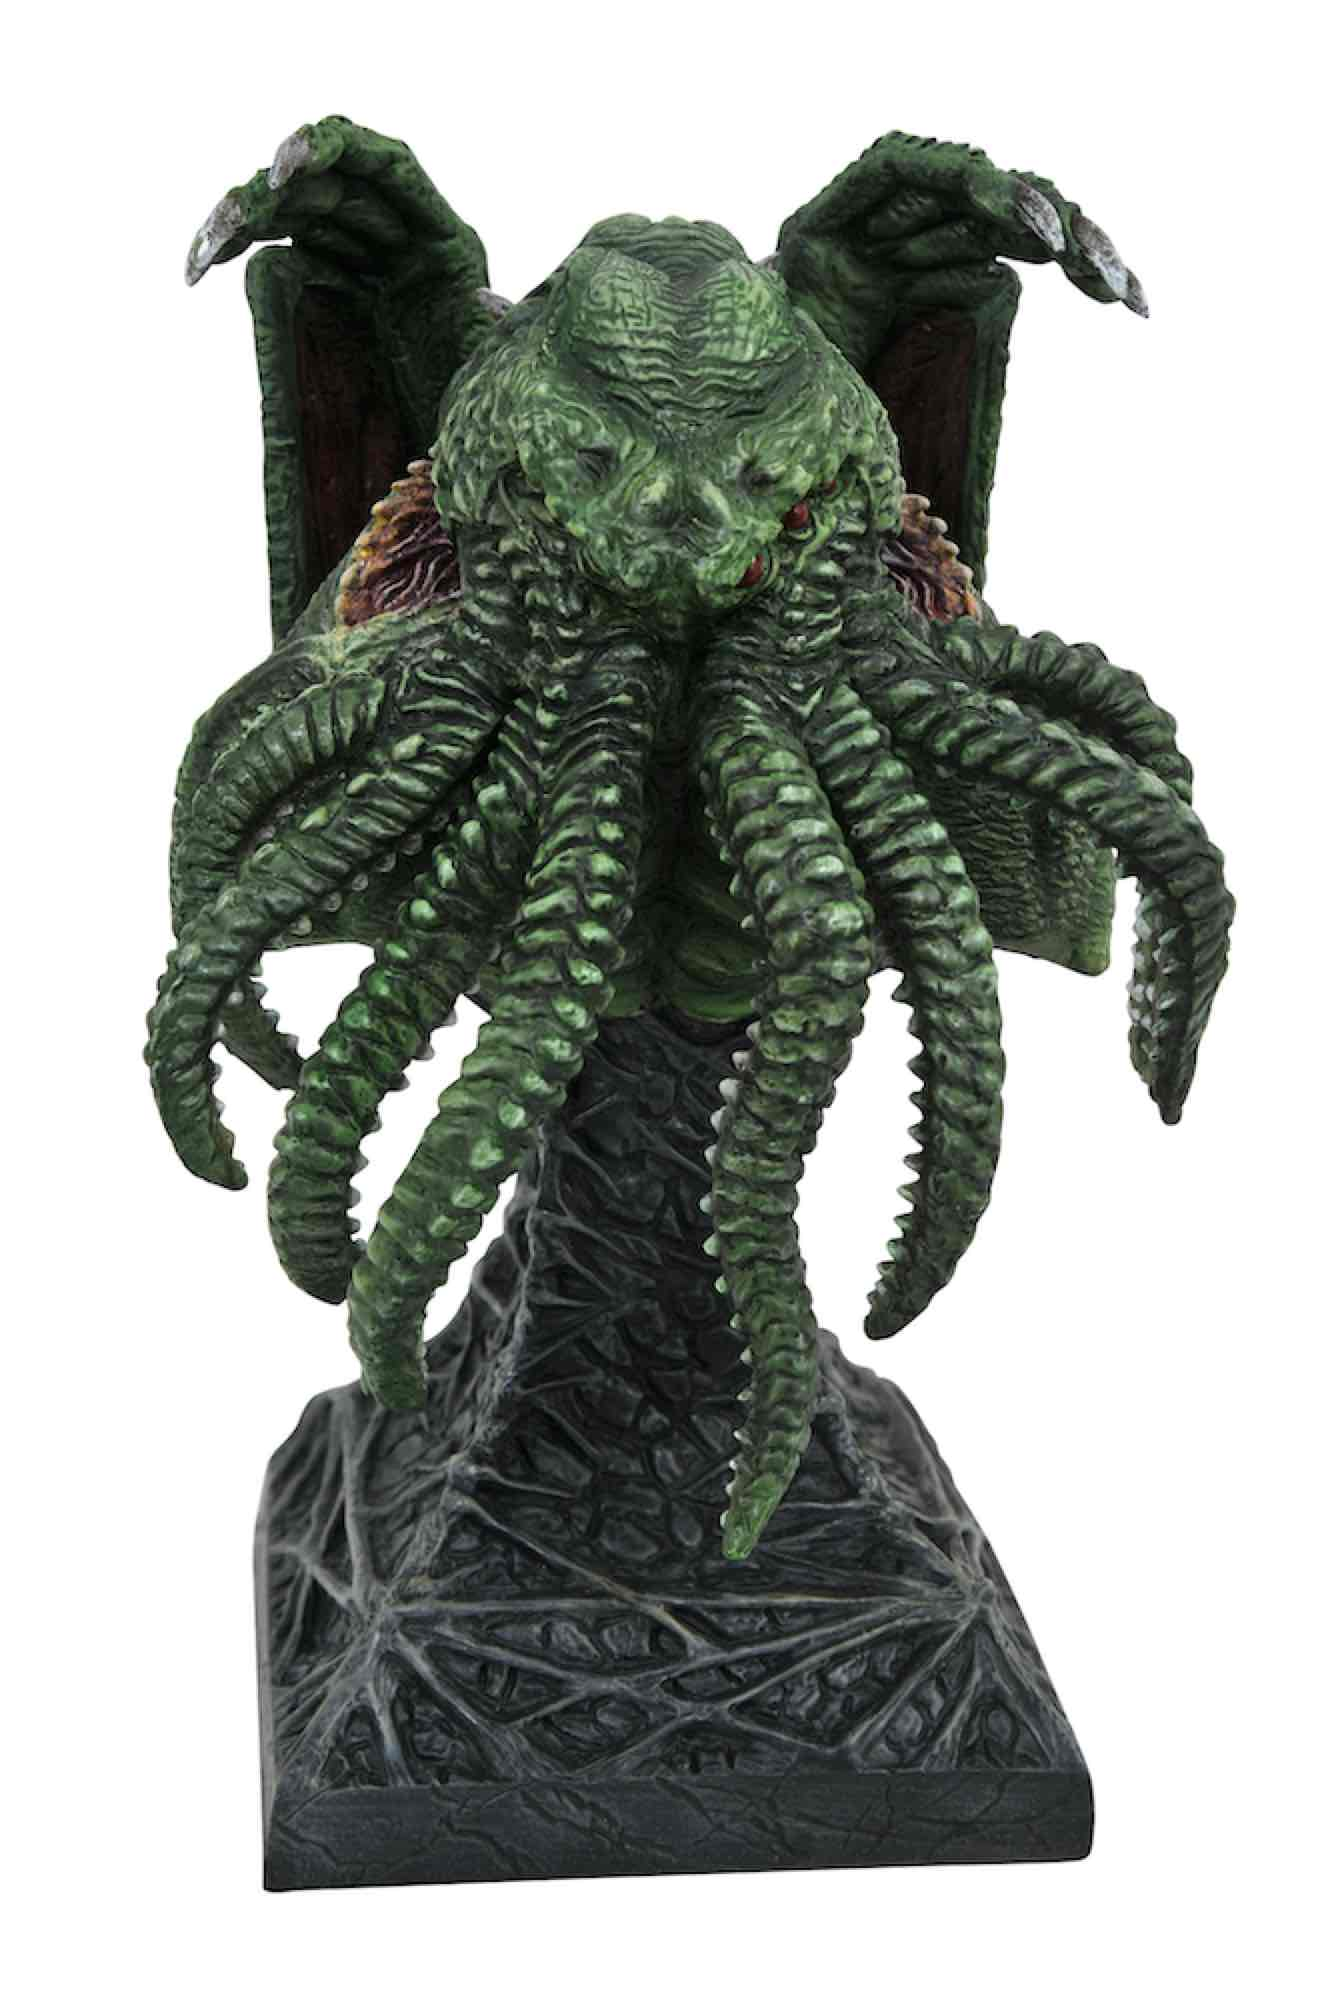 CTHULHU BUSTO RESINA 25 CM 1/2 SCALE LEGENDS IN 3D CTHULHU